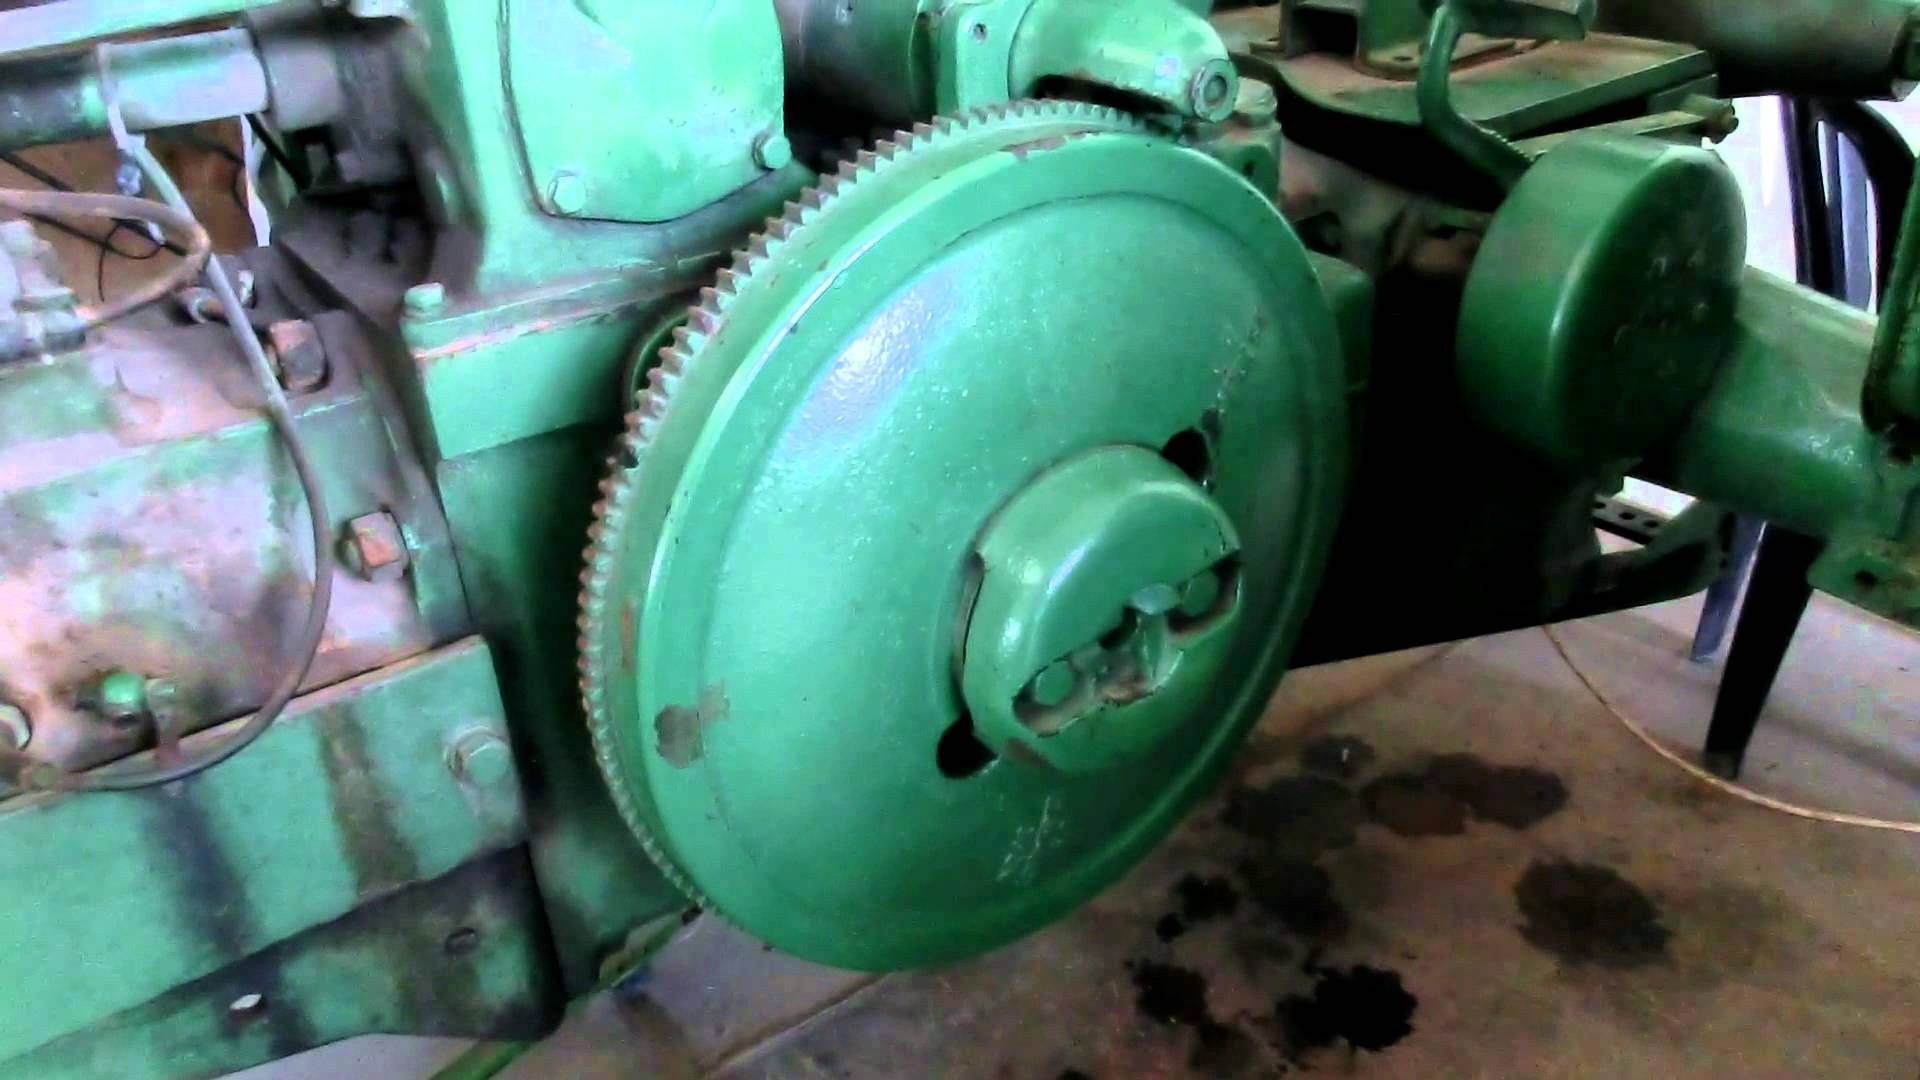 Close look at a Restored 1930s John Deere with 2 cylinders ...